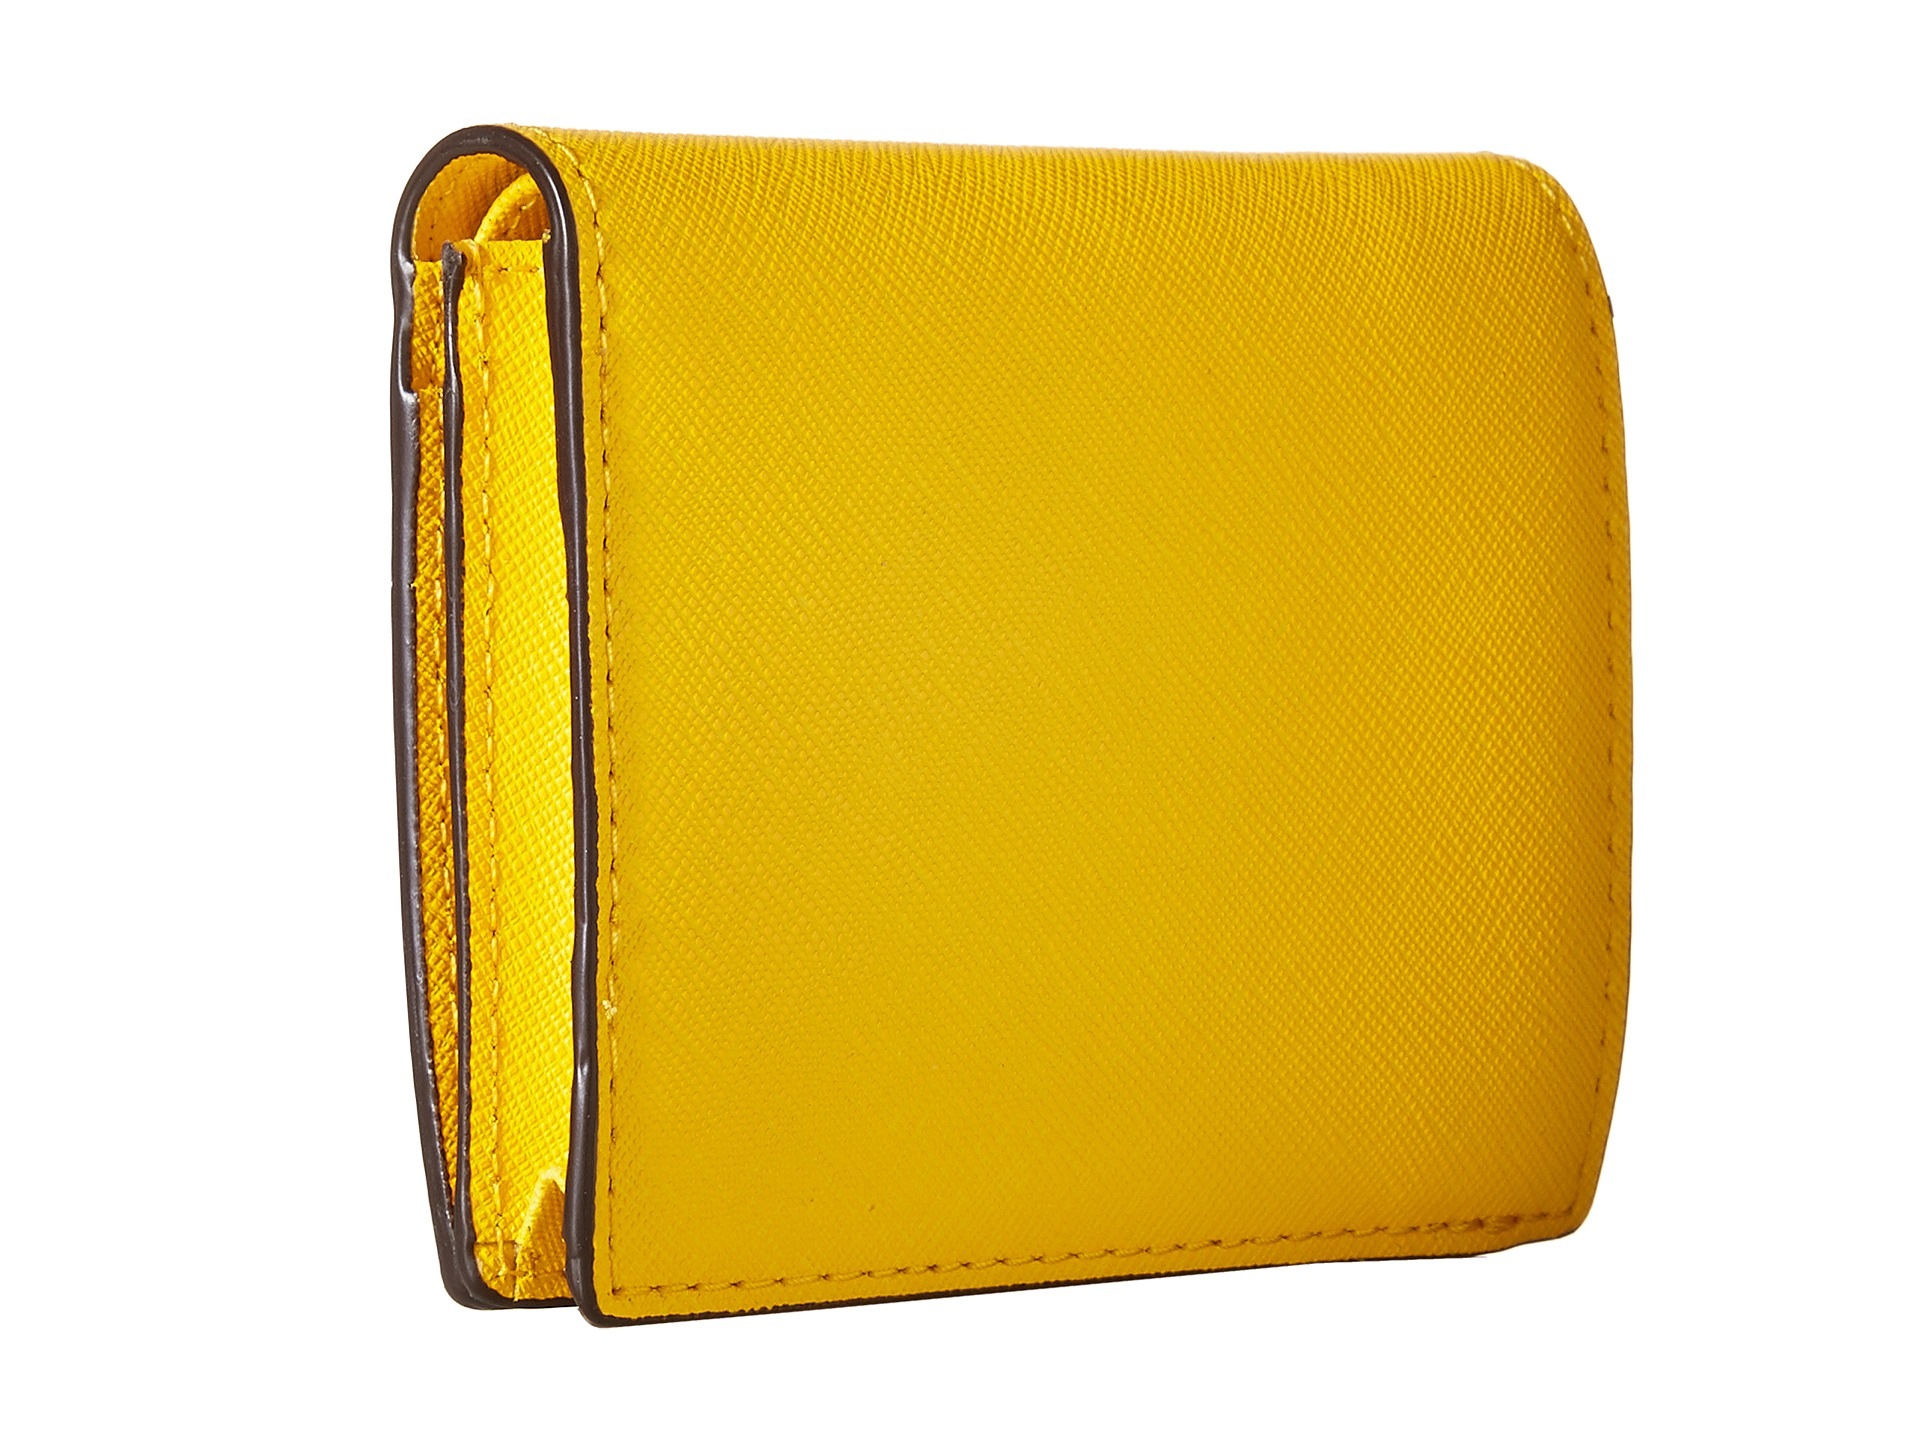 7720d1c89a0a Lyst - MICHAEL Michael Kors Jet Set Travel Flap Card Holder in Yellow